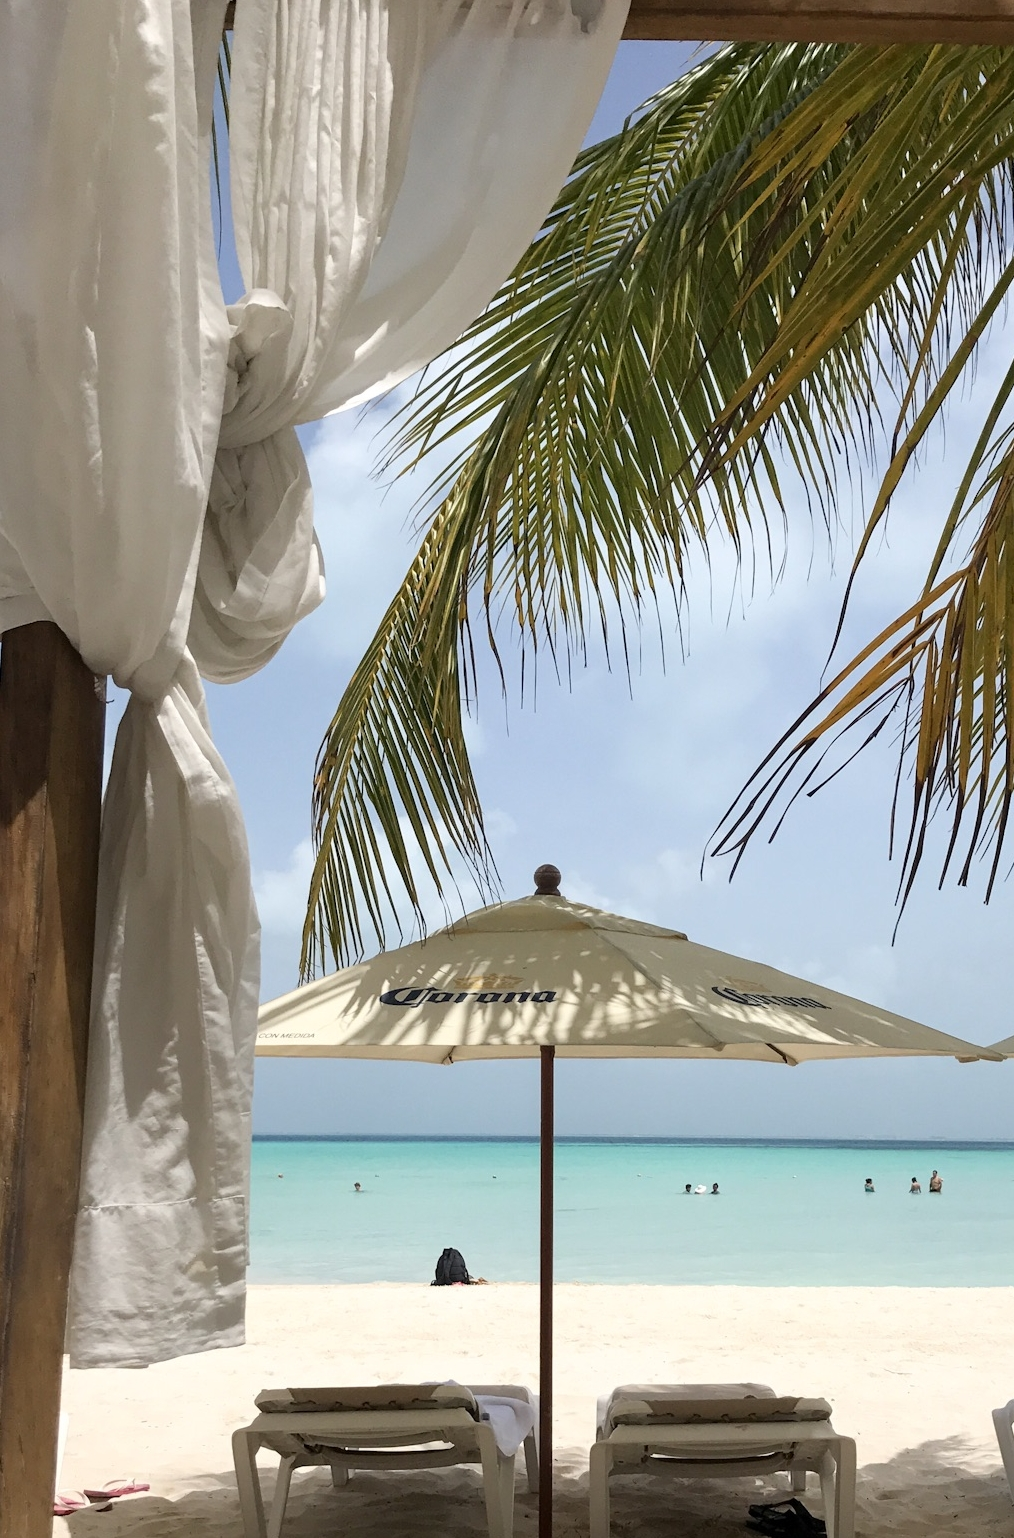 Playa Norte   Isla Mujeres Mexico   With Love Paper and Wine